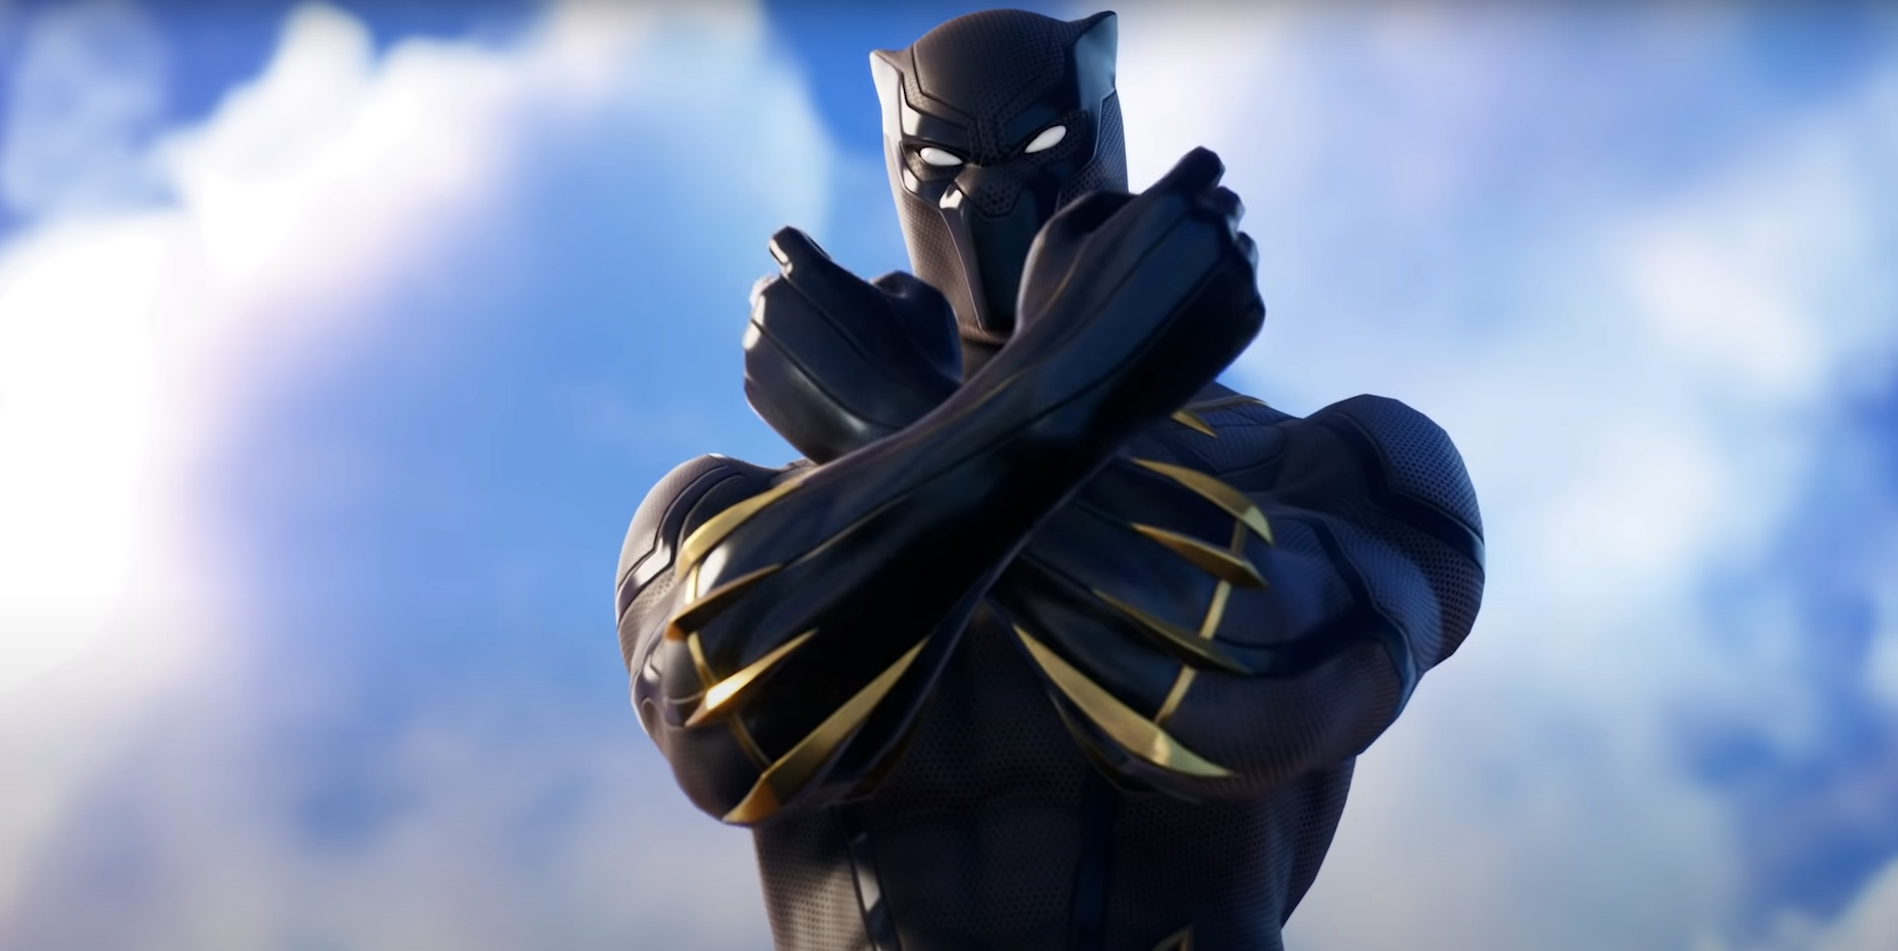 Black Panther in Fortnite using the Wakanda Forever emote